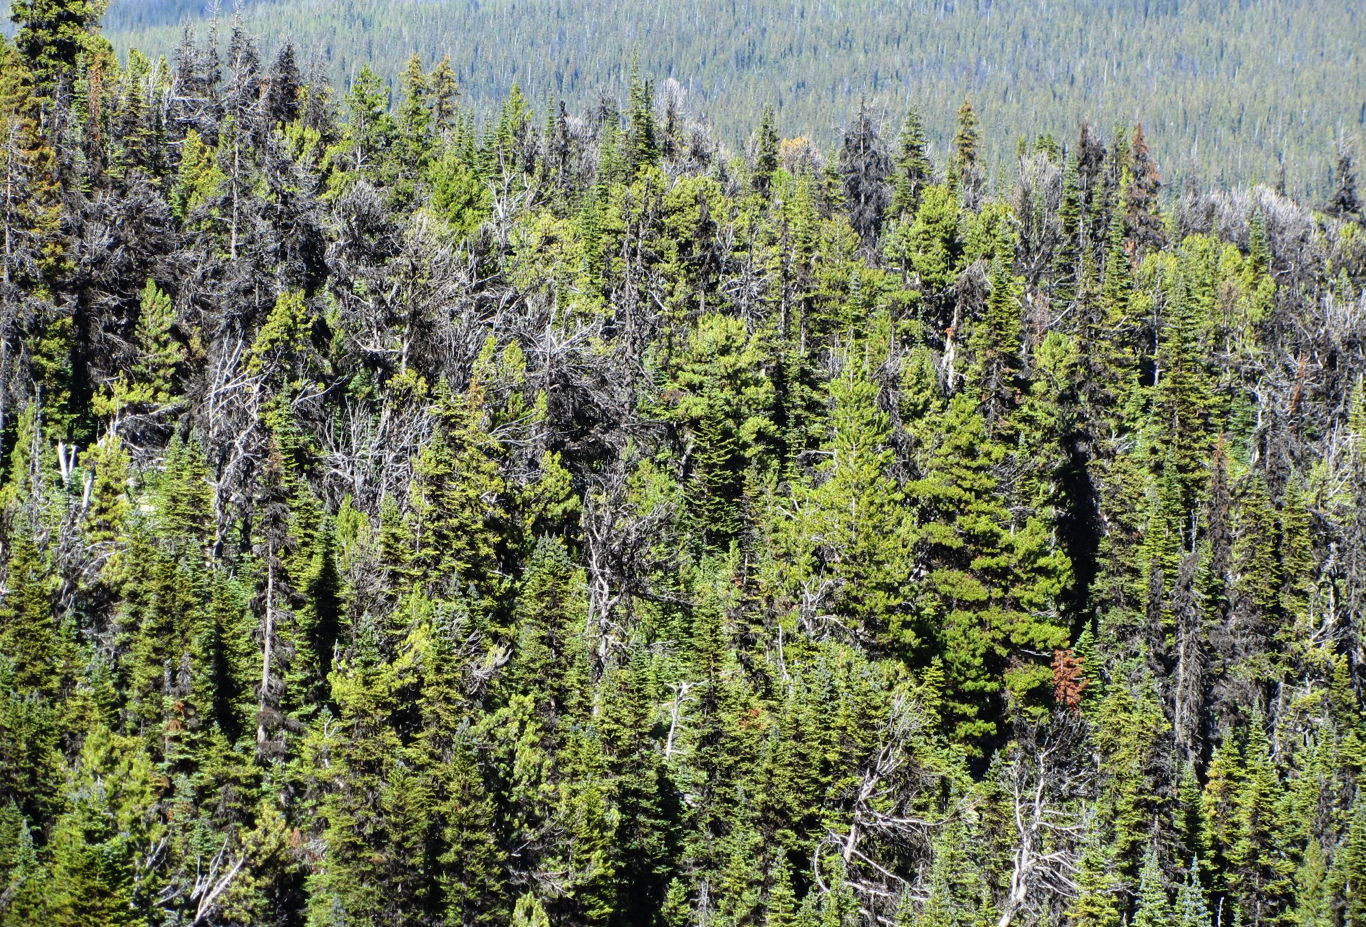 Scattered dead whitebark pine in high-elevation forest on Mount Davidson, south of Vanderhoof in central British Columbia. Photo by Alana Clason.